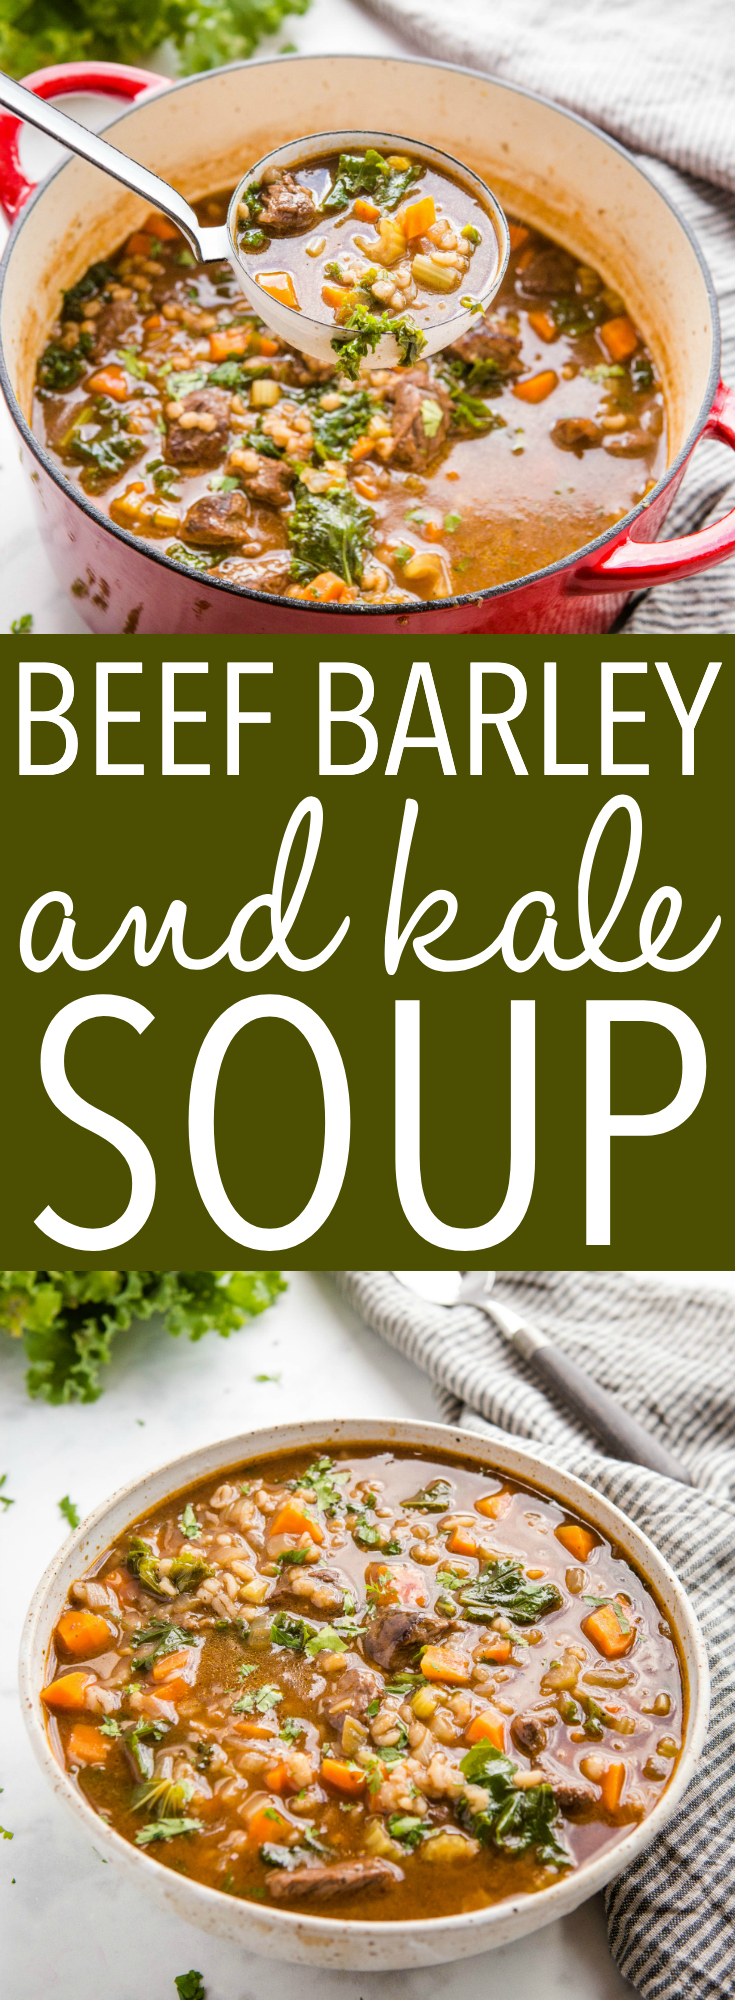 This Beef Barley Soup with Kale is the perfect warm and comforting soup made with tender beef, fresh veggies and barley - so easy to make in one pot! Recipe from thebusybaker.ca! #kale #beefbarleysoup #fallsoup #homemadesoup #fall #winter #comfortfood #homemade #homesteading via @busybakerblog